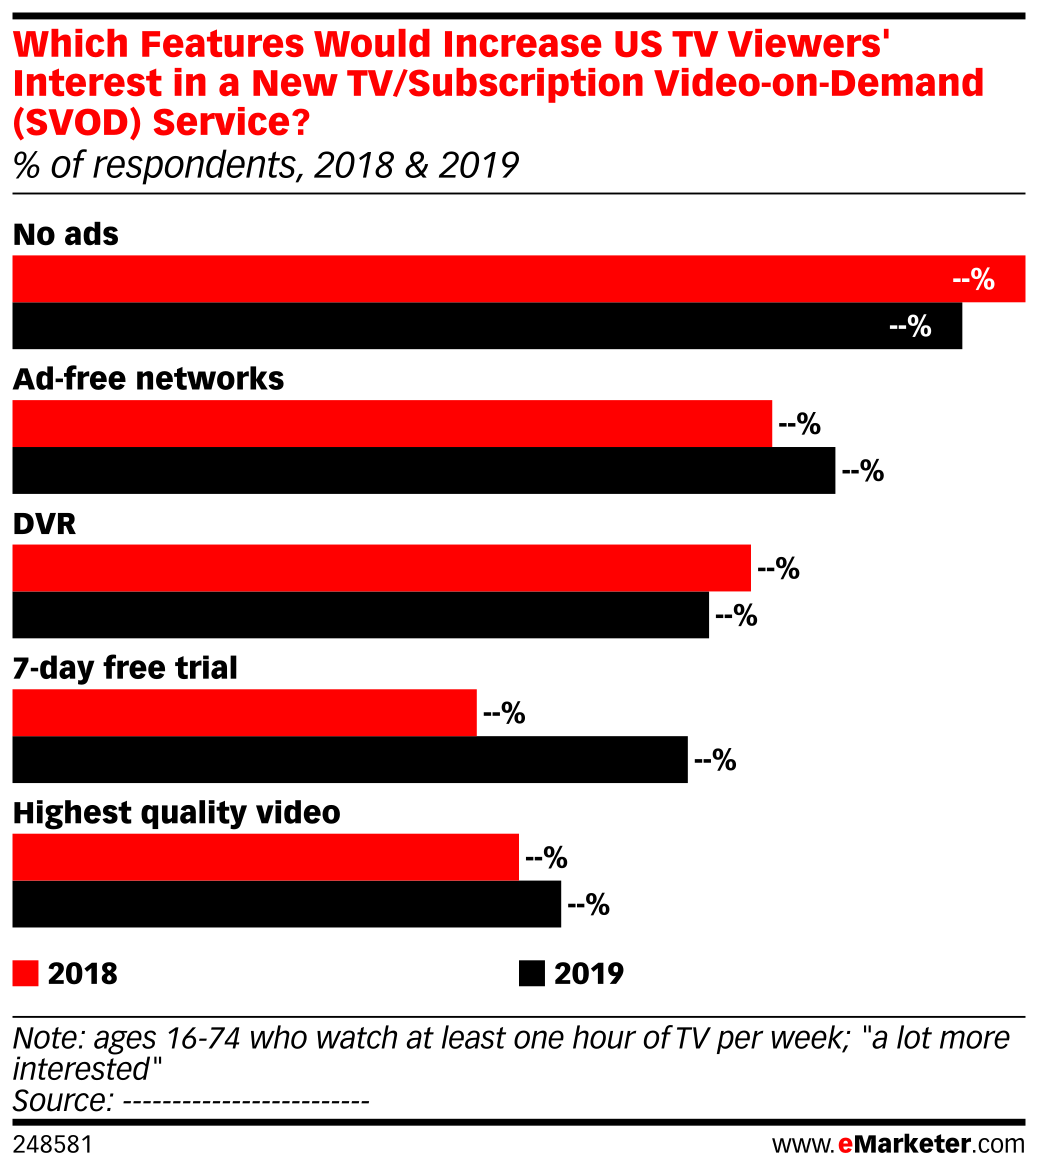 Which Features Would Increase US TV Viewers' Interest in a New TV/Subscription Video-on-Demand (SVOD) Service? (% of respondents, 2018 & 2019)